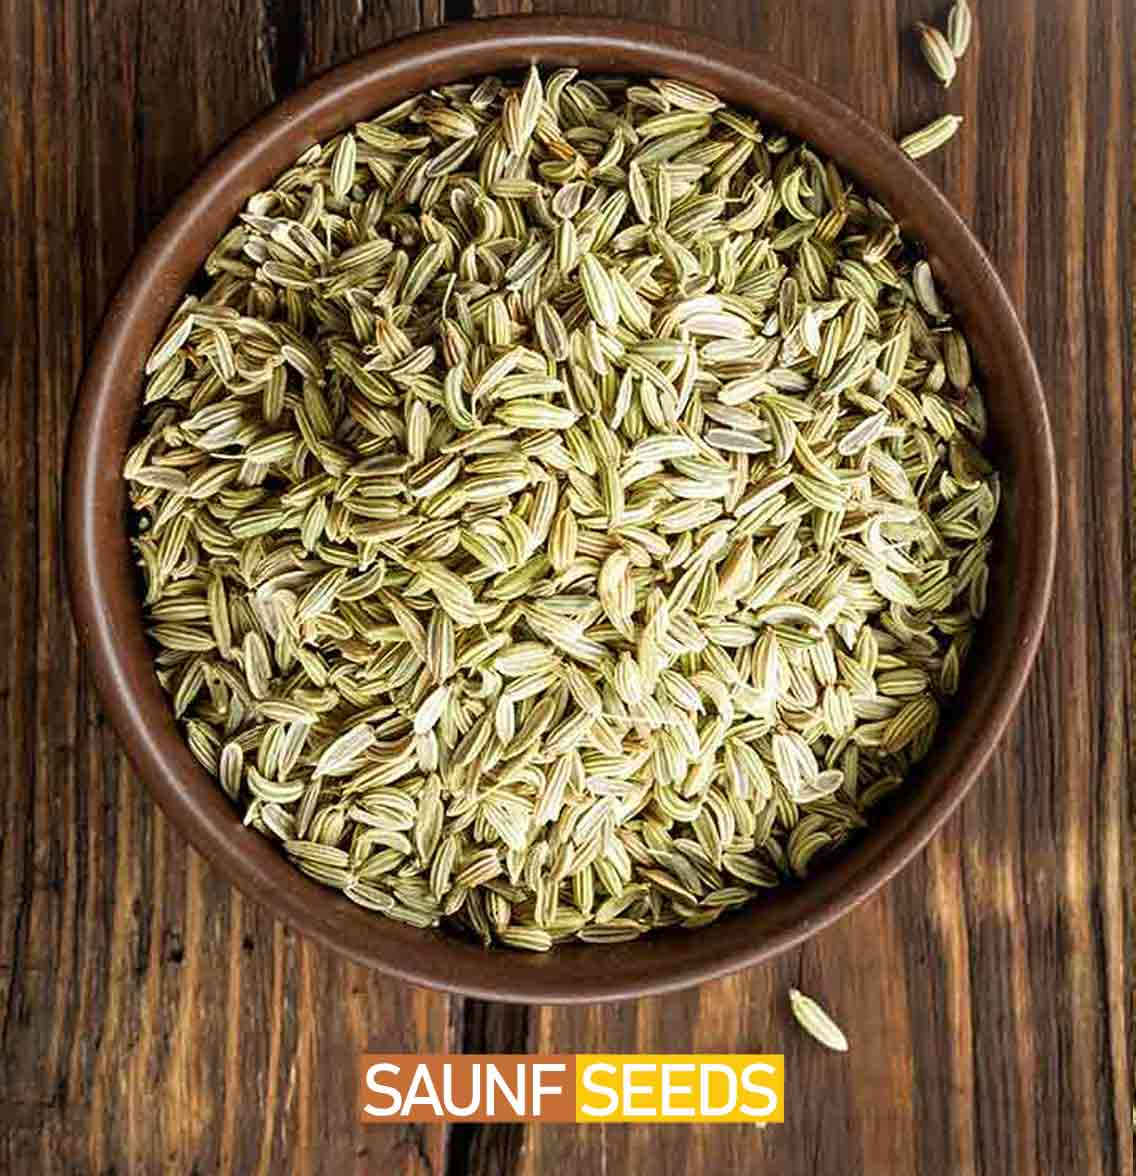 11 Reasons Why You Should Have Saunf Seeds Daily